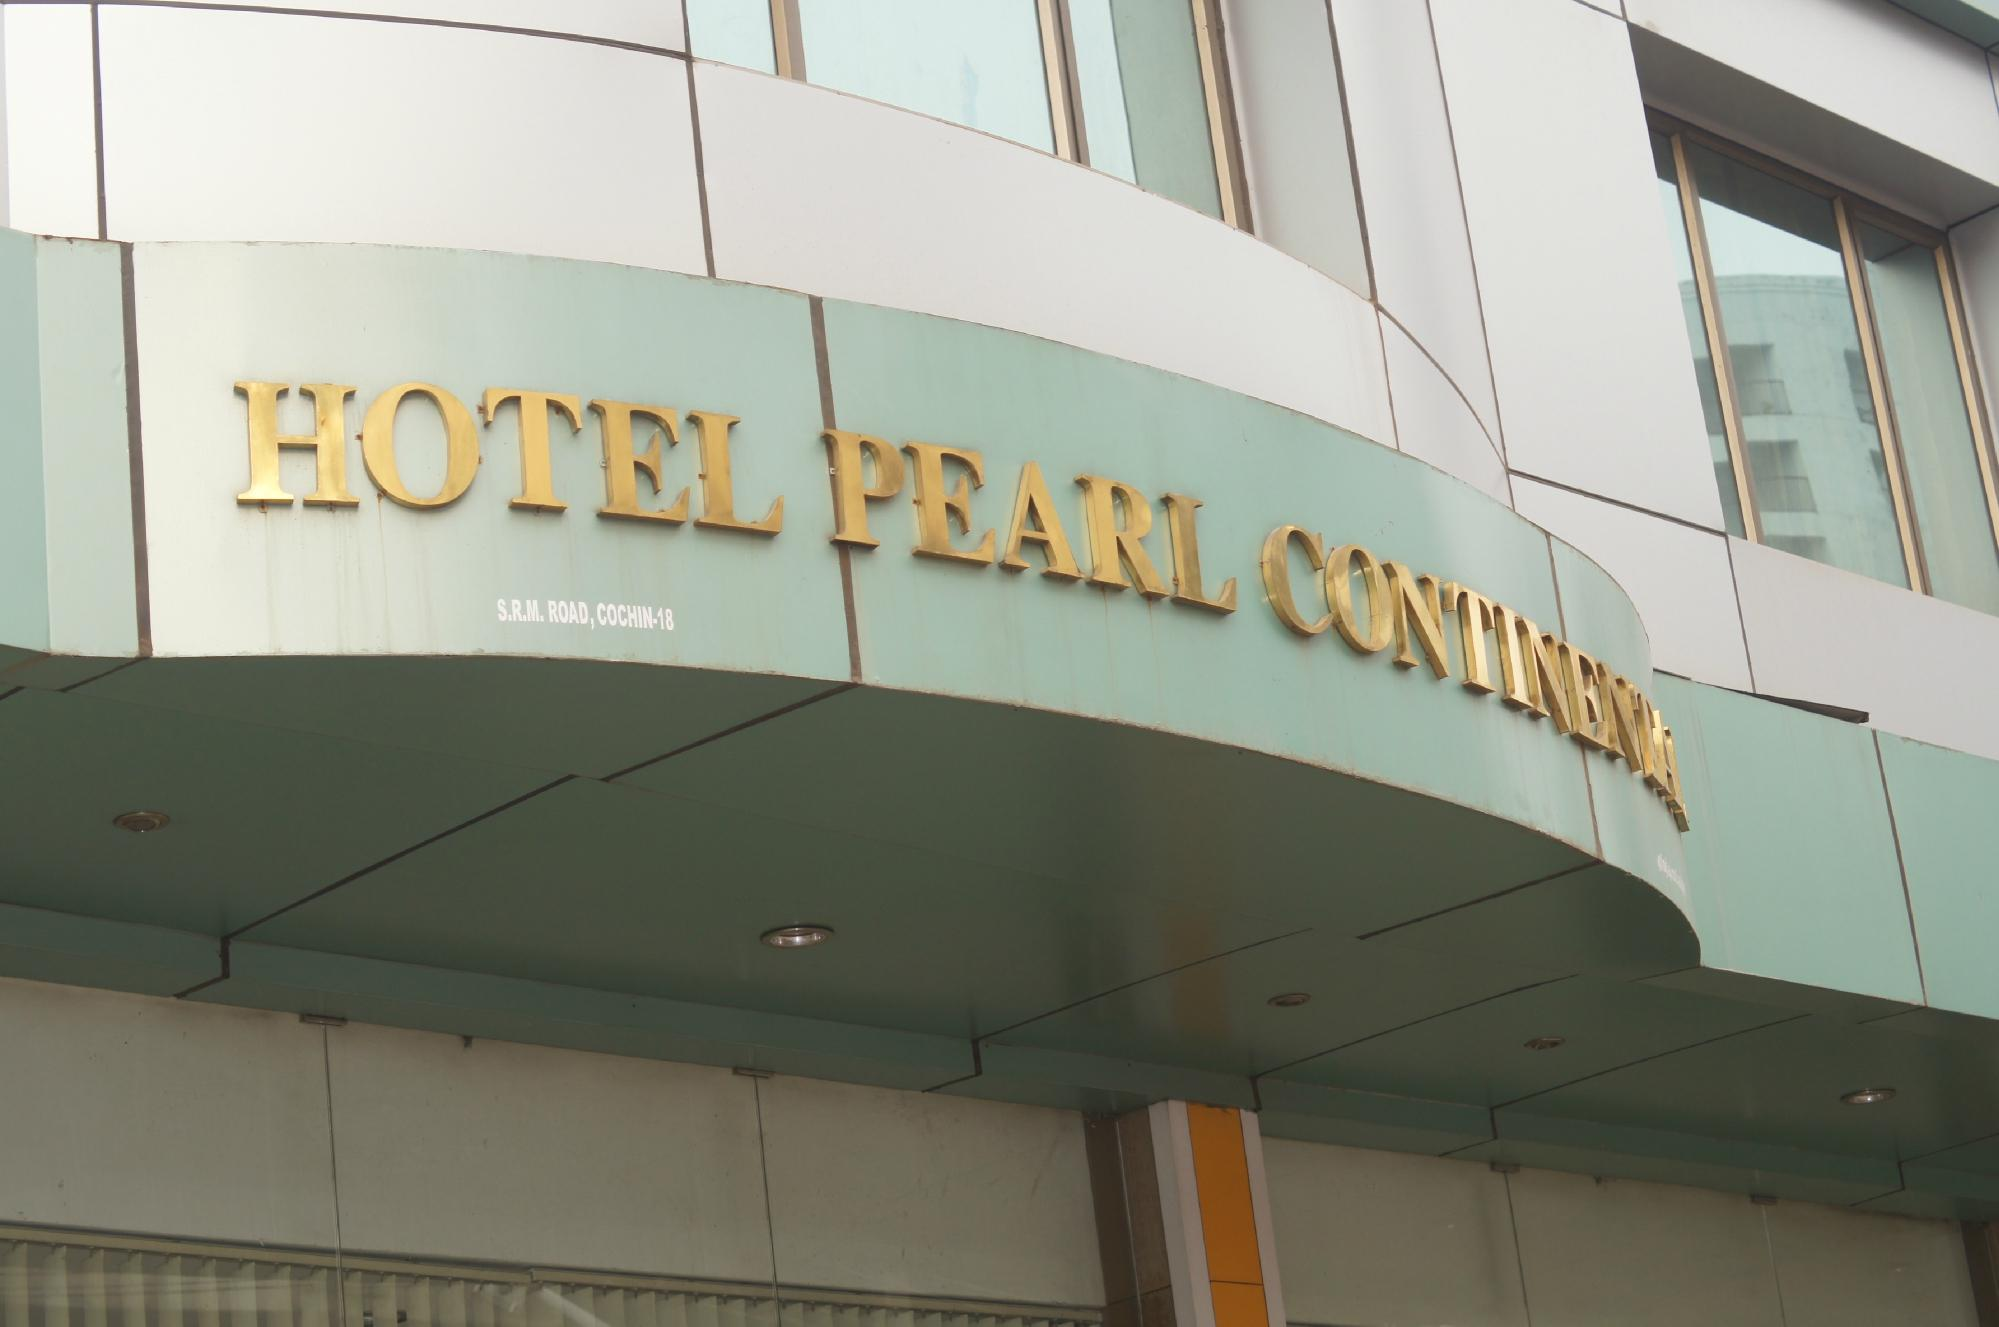 Hotel Pearl Continental